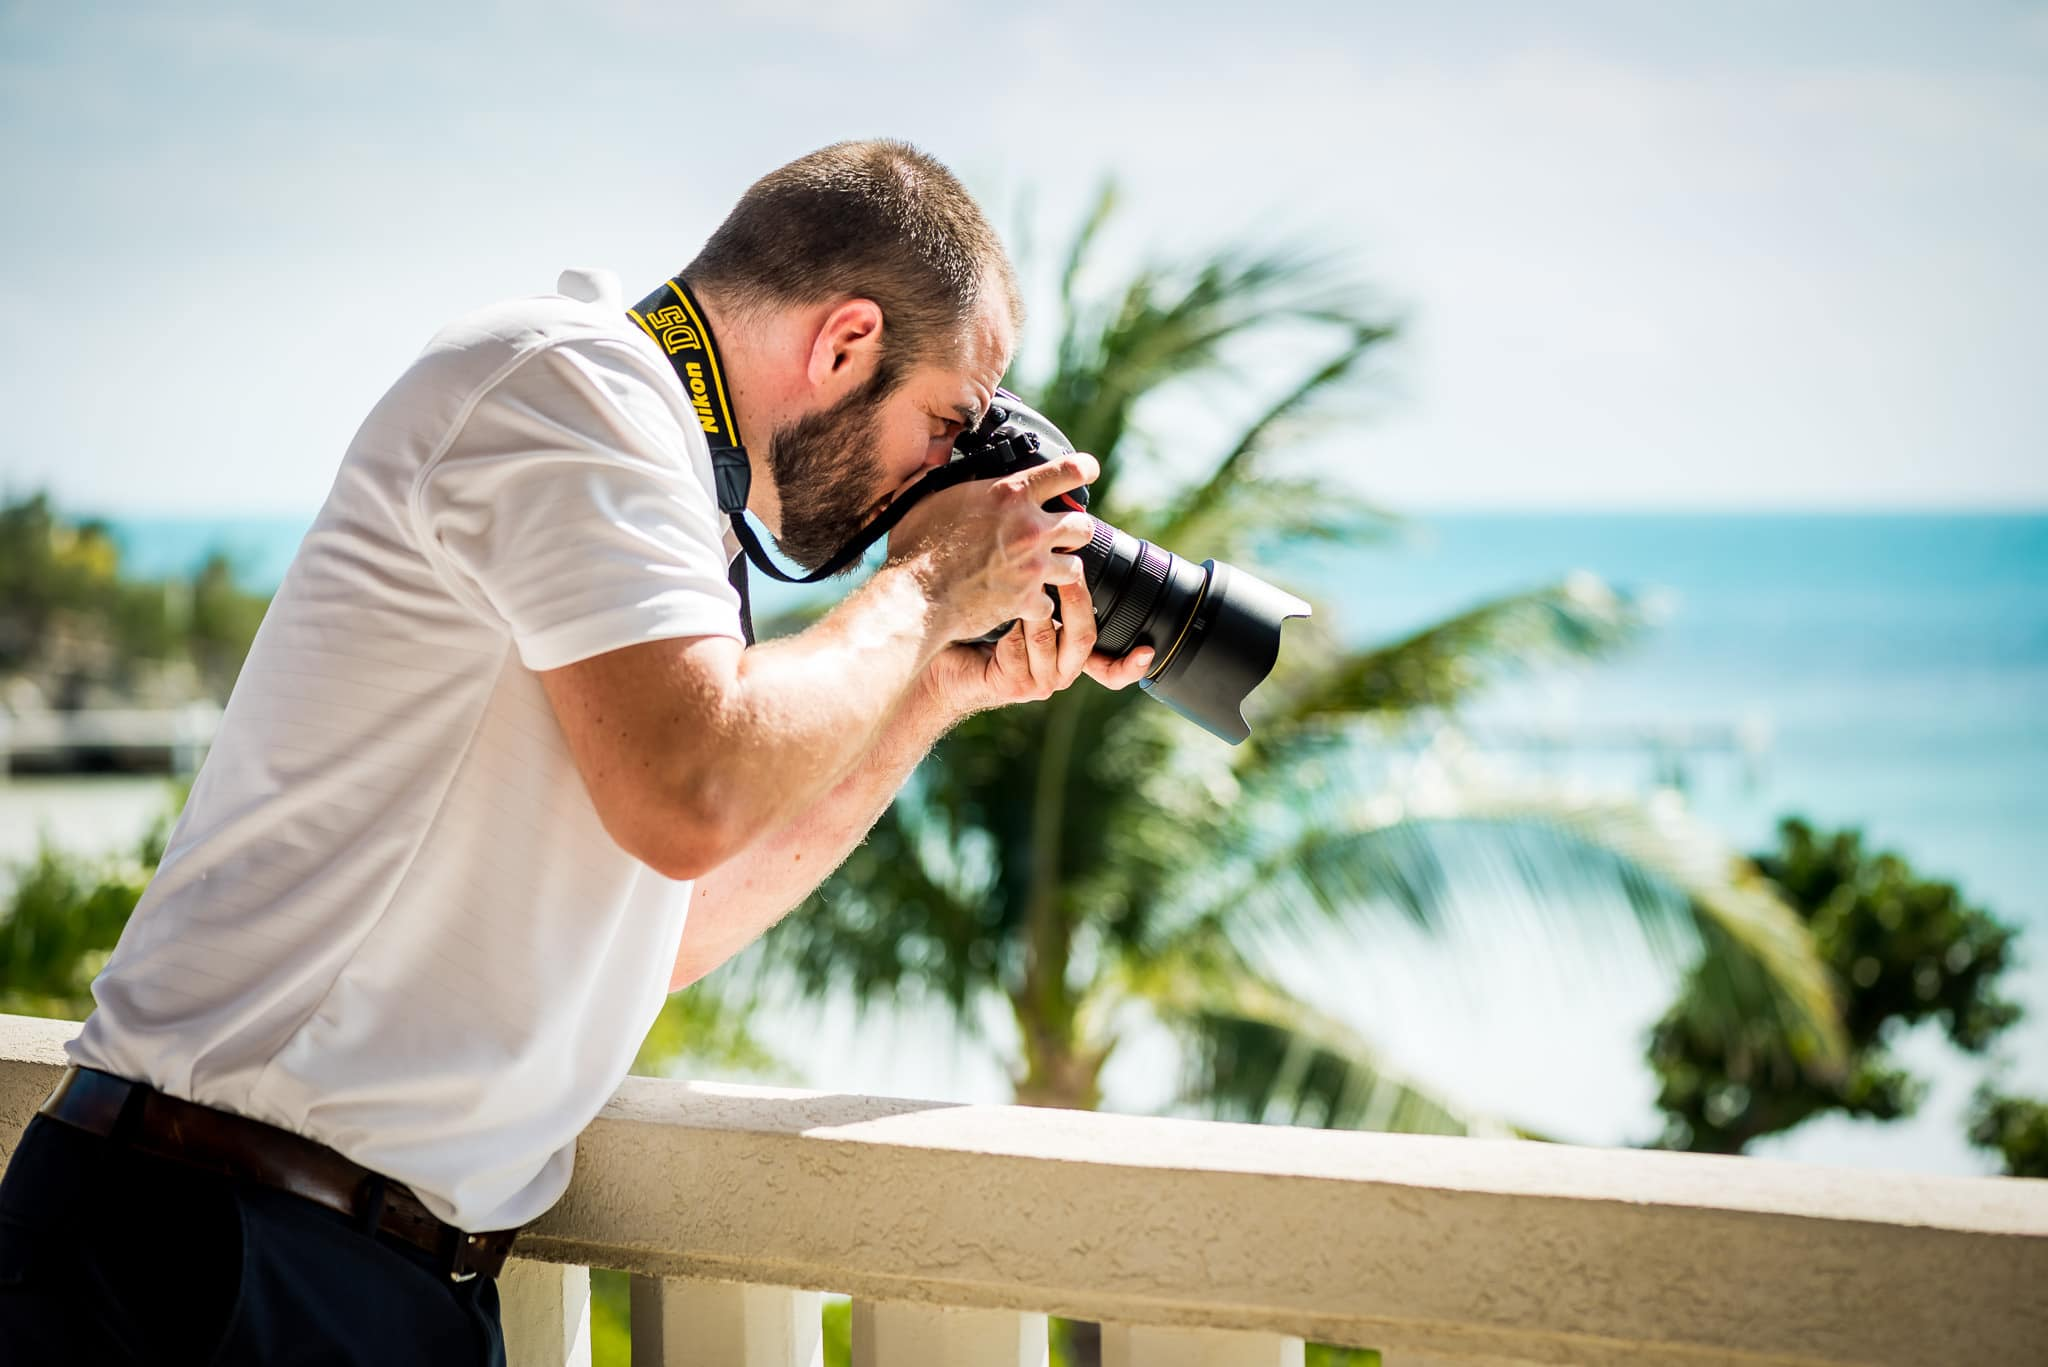 Minneapolis Commercial Photographer Jackson Tyler Eddy shooting from balcony on location in Turks and Caicos